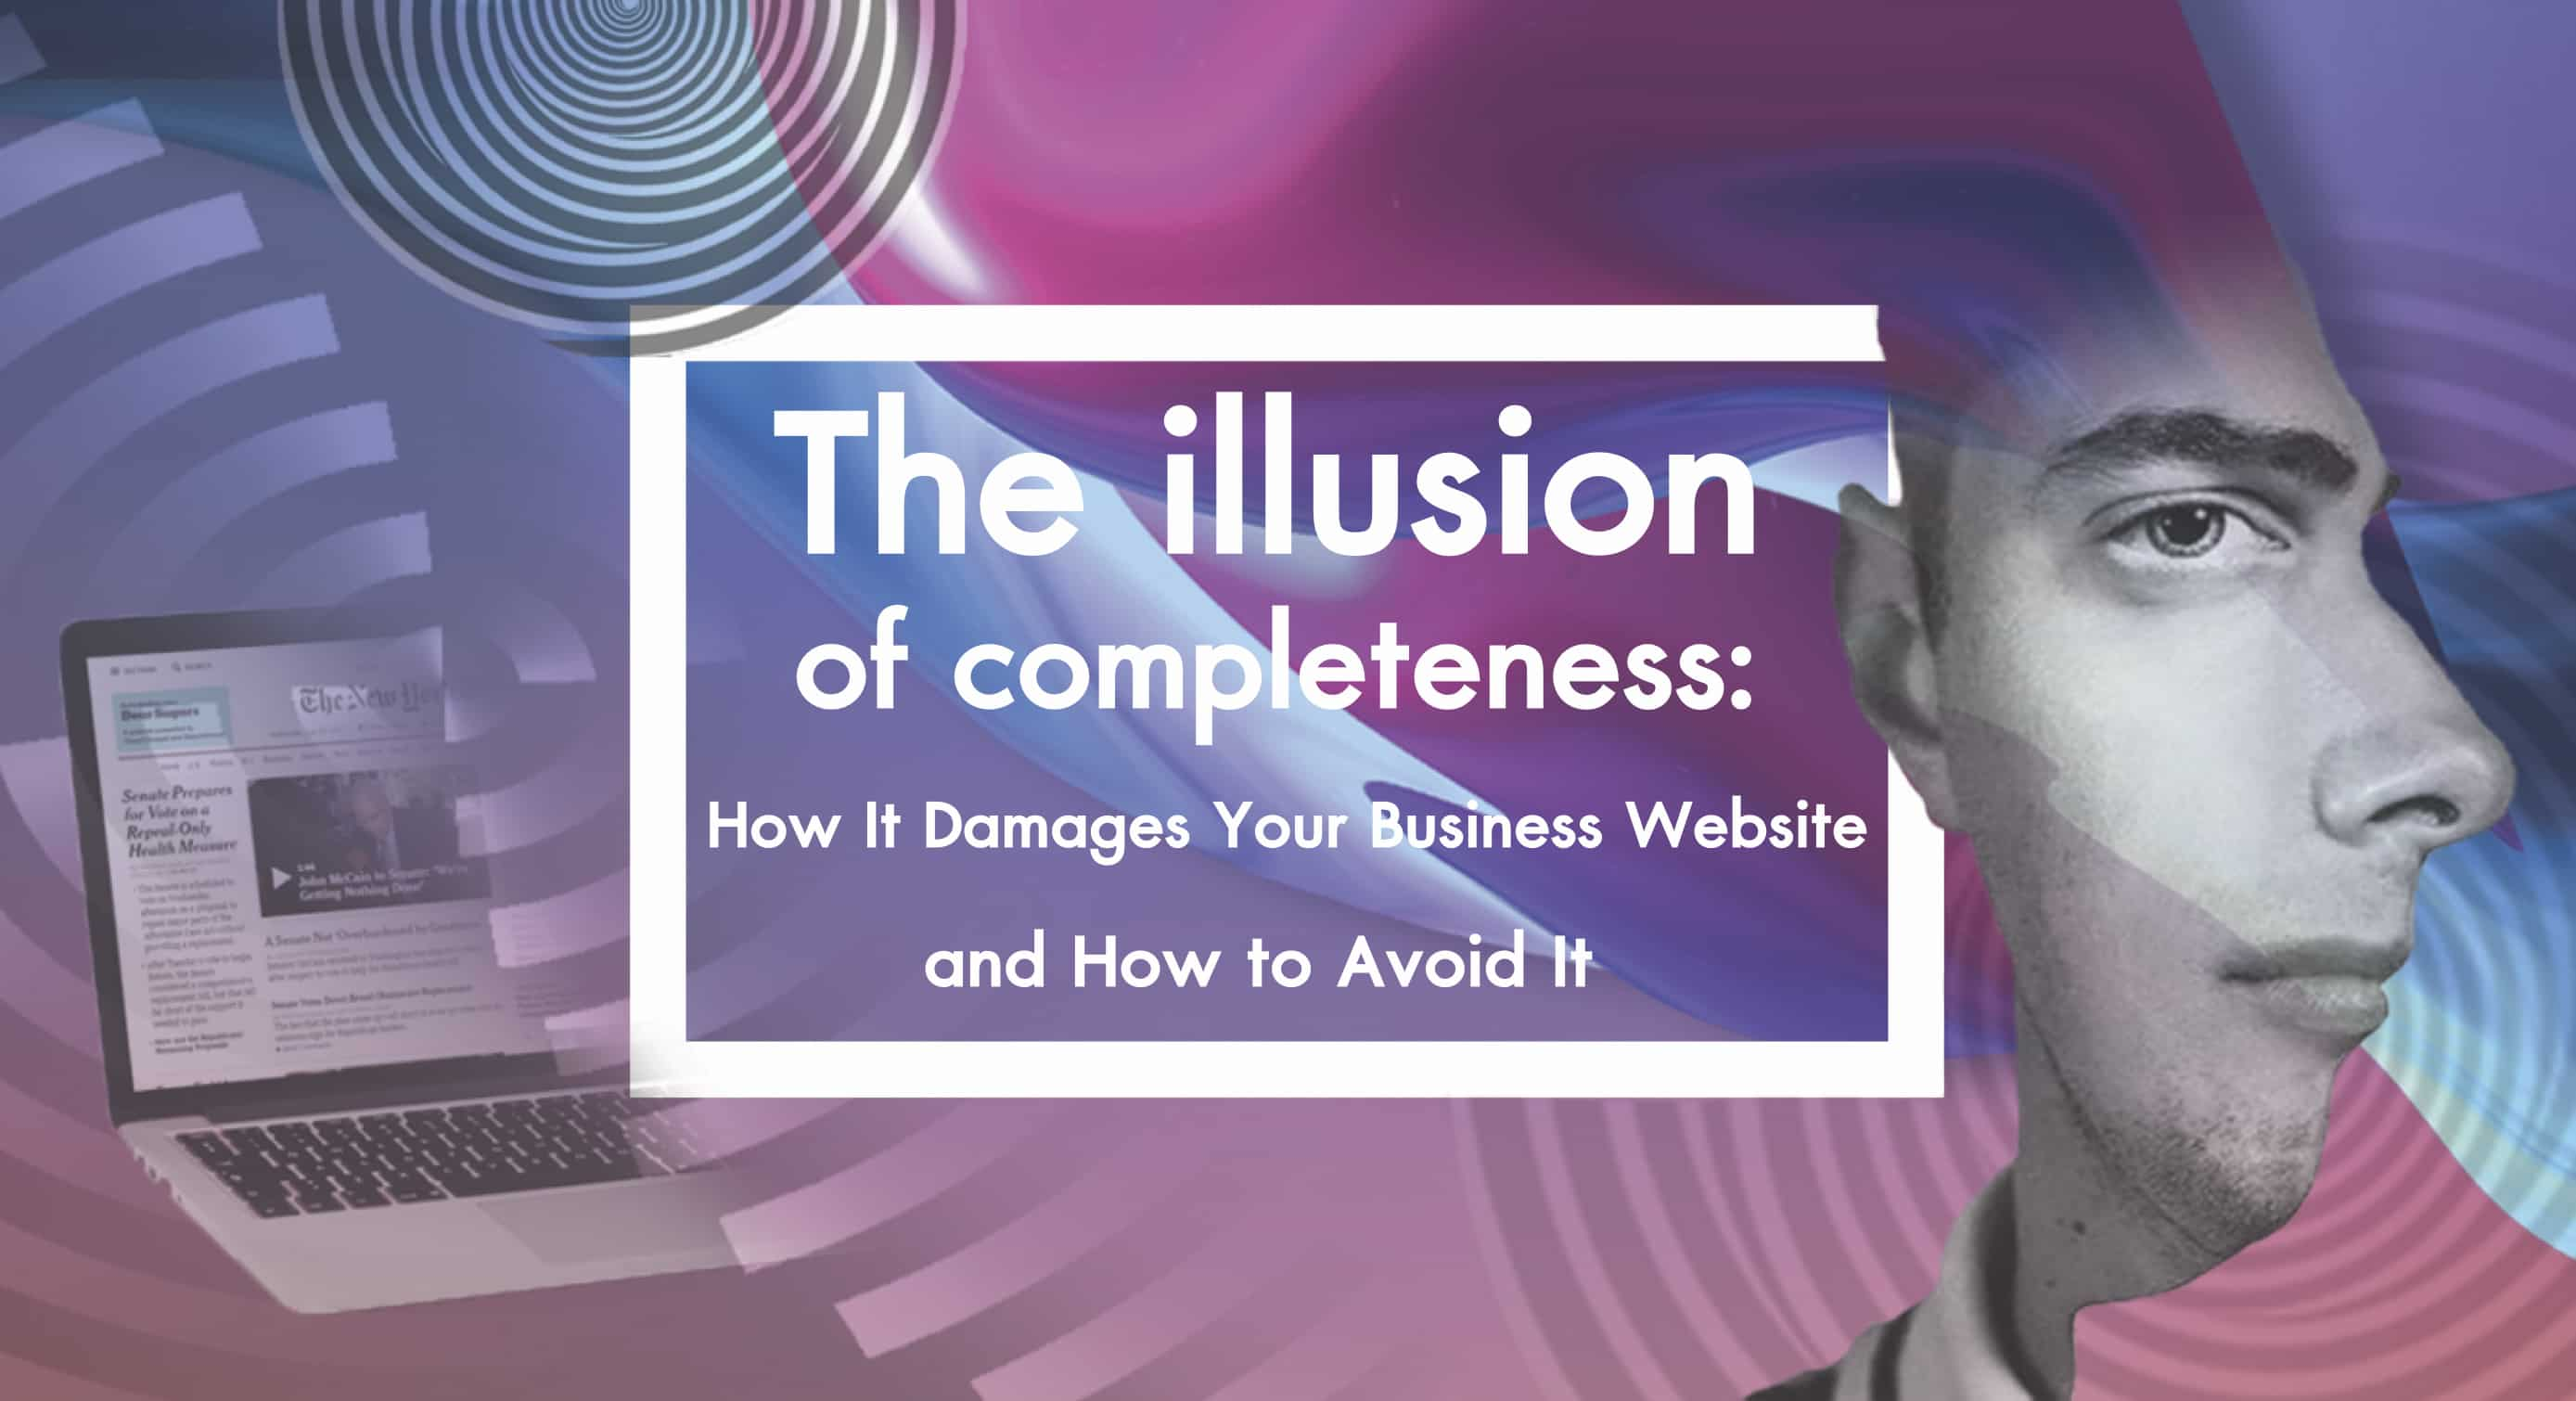 The Illusion of Completeness: How It Damages Your Business Website and How to Avoid It